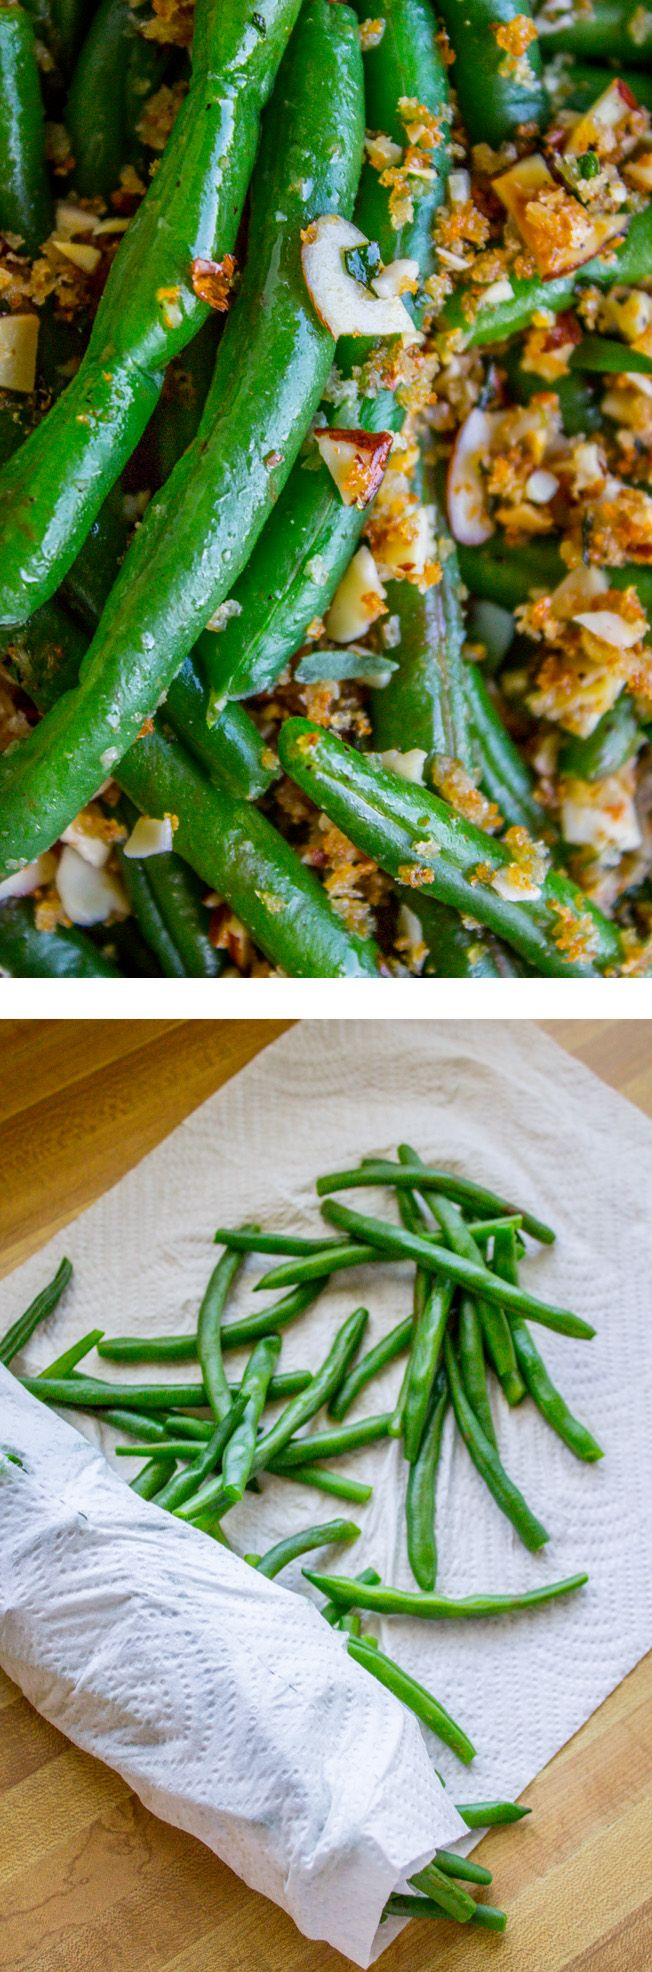 MAKE AHEAD Green Beans with Garlic Bread Crumbs and Almonds from The Food Charlatan. These easy make-ahead green beans are perfect for the holidays! Who's got time for elaborate side dishes? These are simple yet delicious. The garlic bread crumbs and almonds add tons of flavor. This recipe is great for when you are hosting Thanksgiving, Christmas, or Easter.